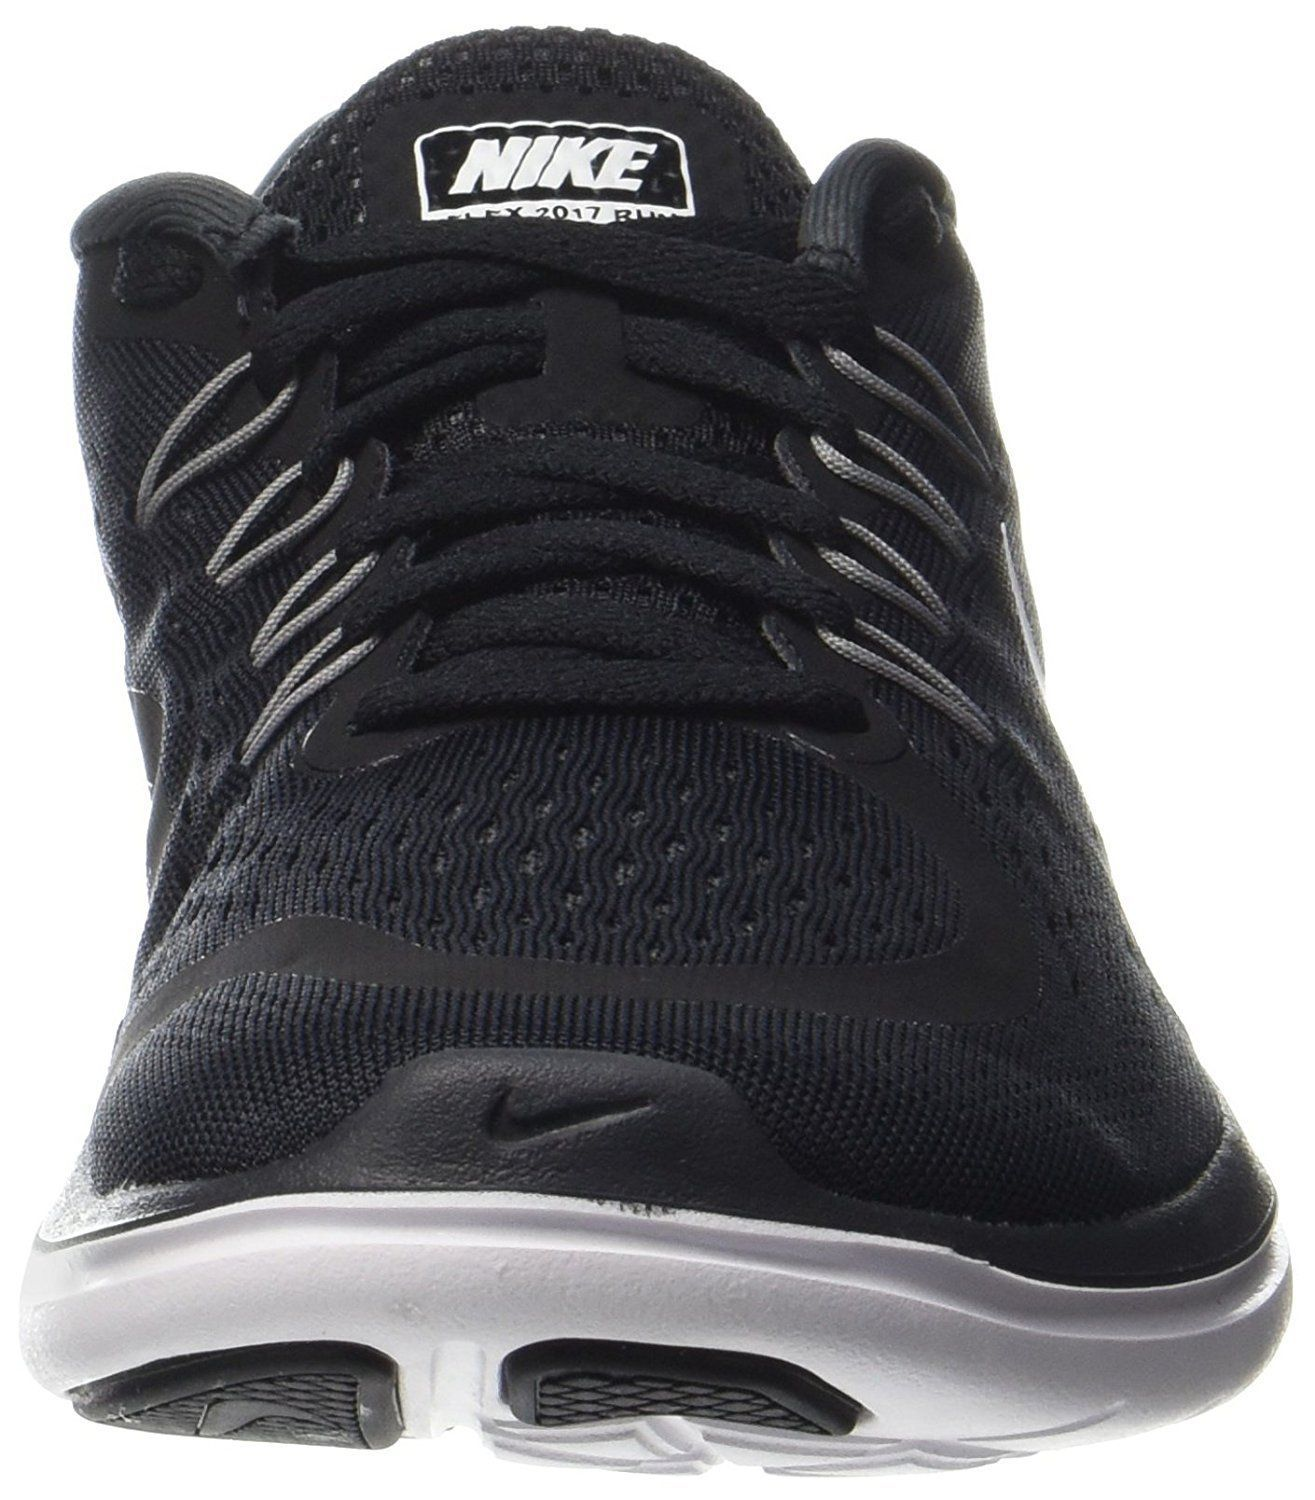 huge selection of a9155 4fa45 ... Nike Flex 2017 RN Sz 10.5 Black White-Anthracite Men s Running Shoes  898457- ...